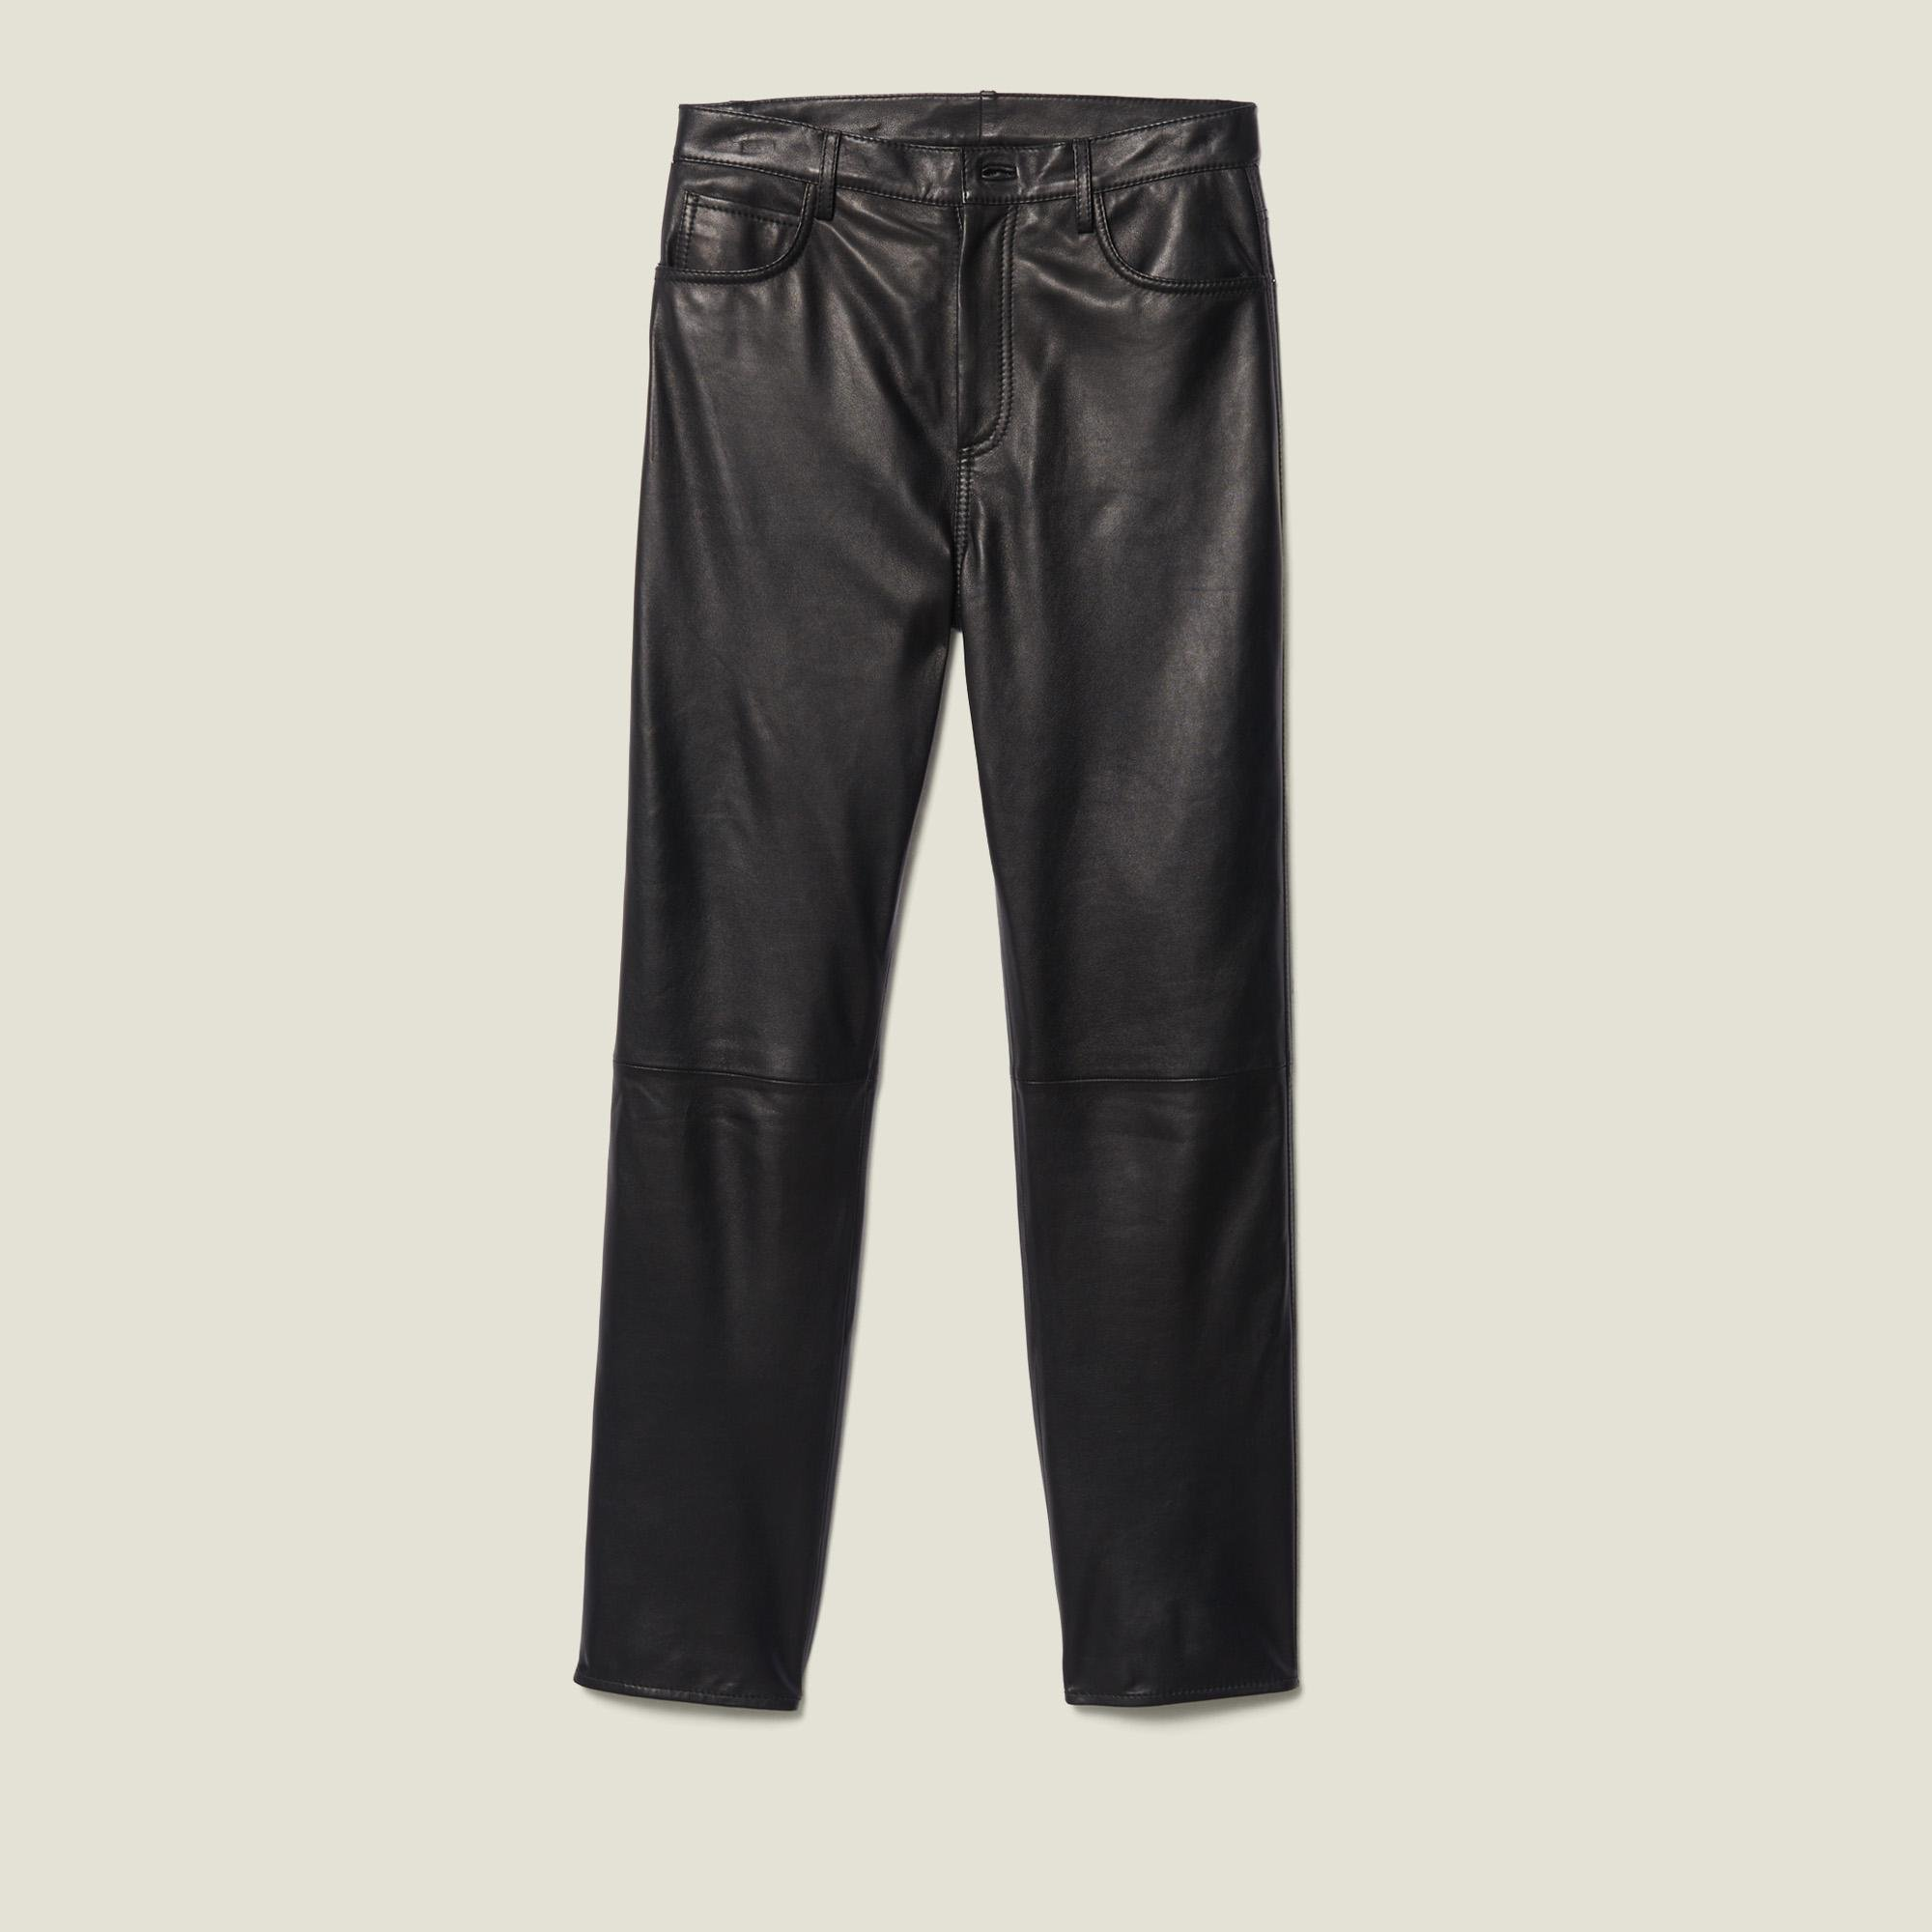 Straight leather pants with seaming